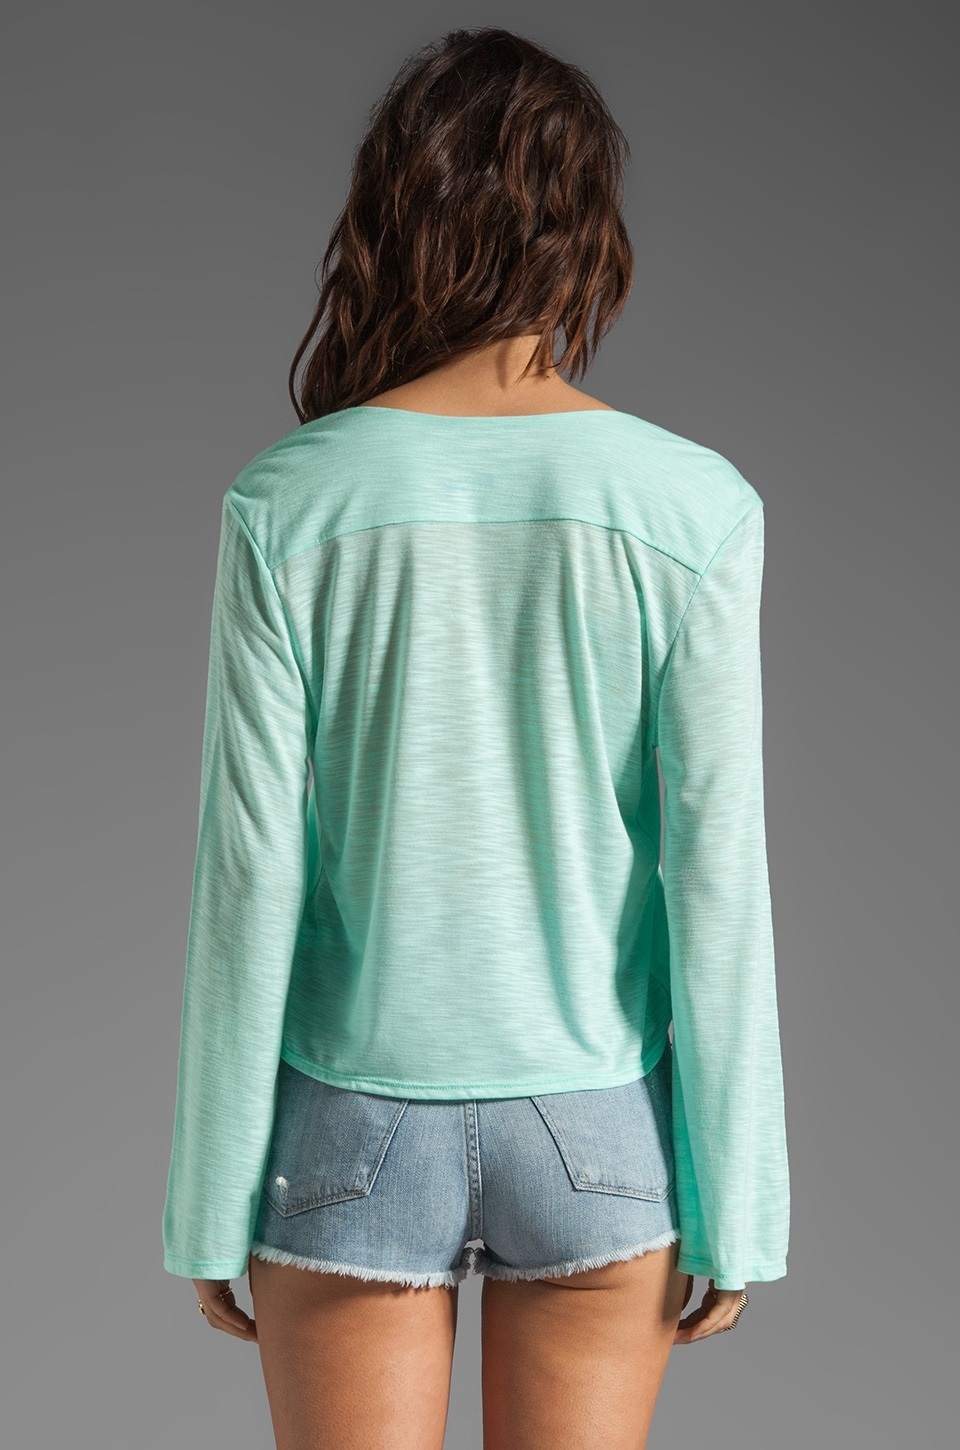 Blue Life Hayley Top in Mint